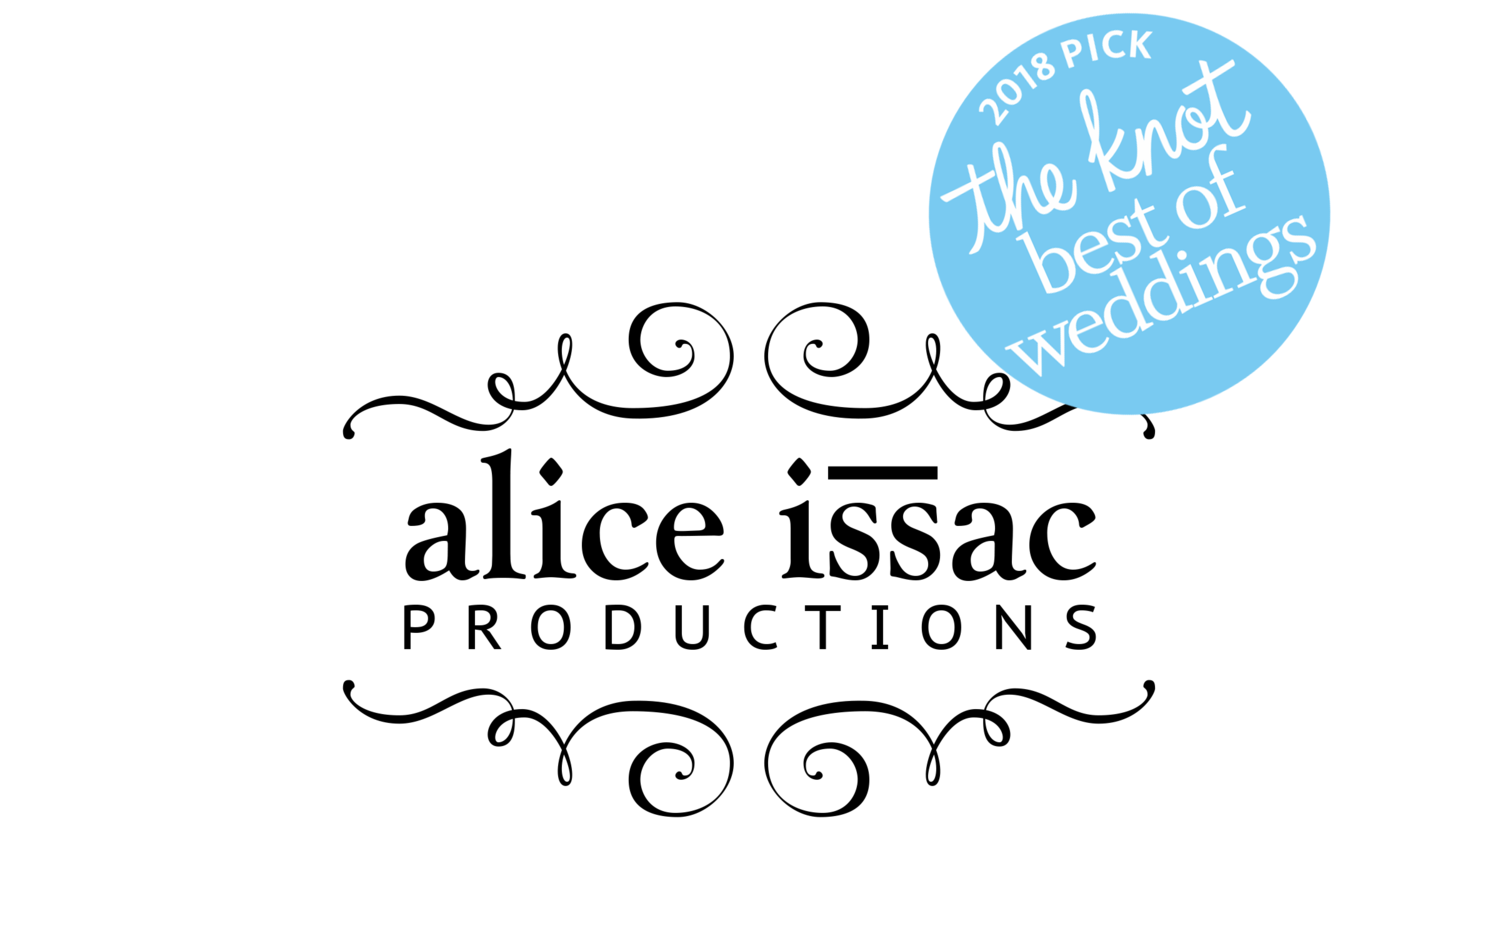 Alice Issac Productions